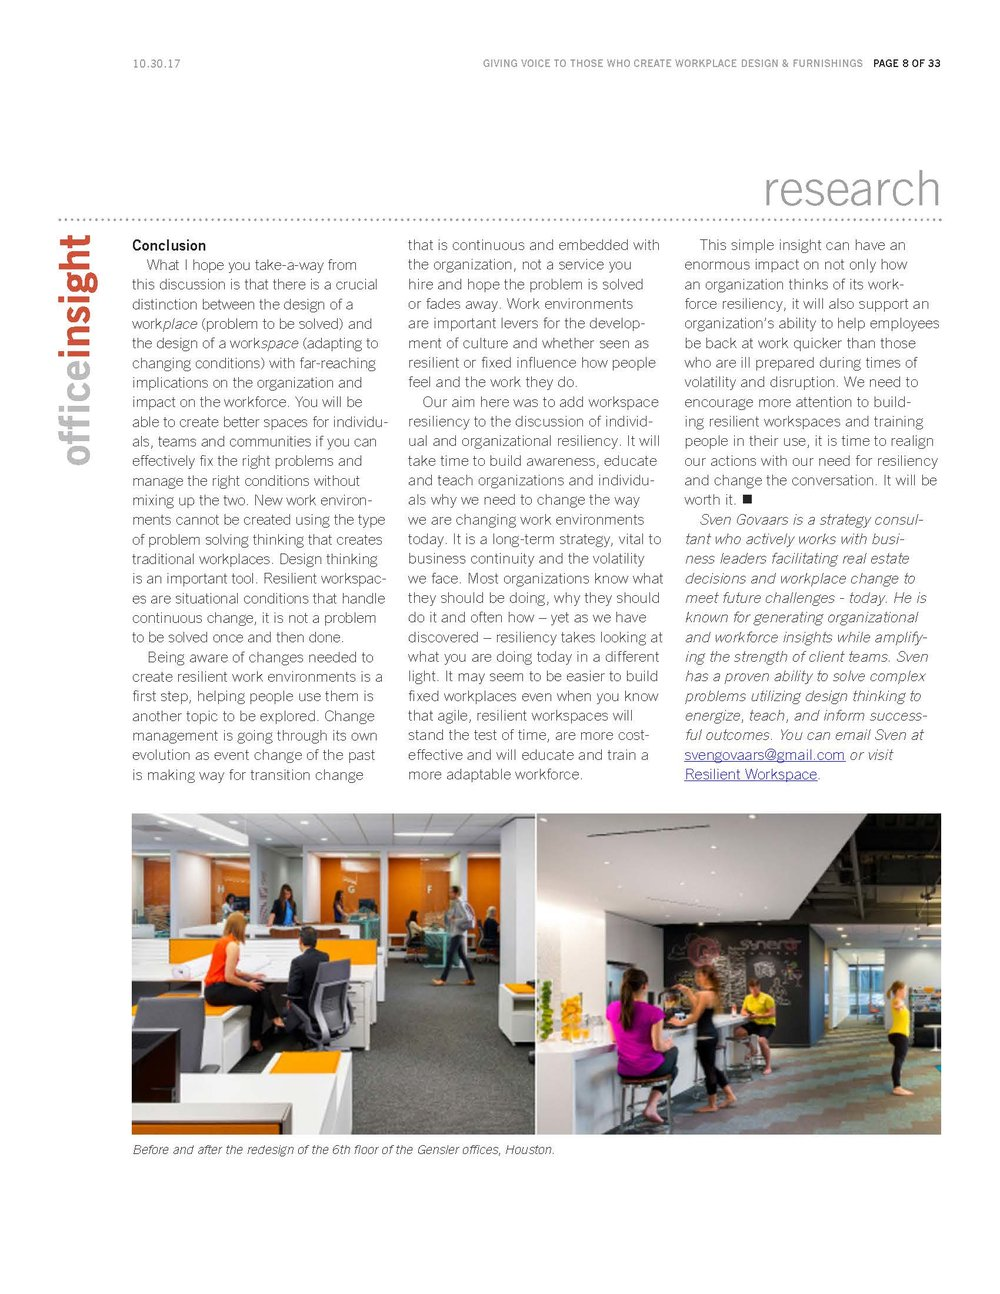 Resilient Workspace officeinsight part 3_Page_7.jpg